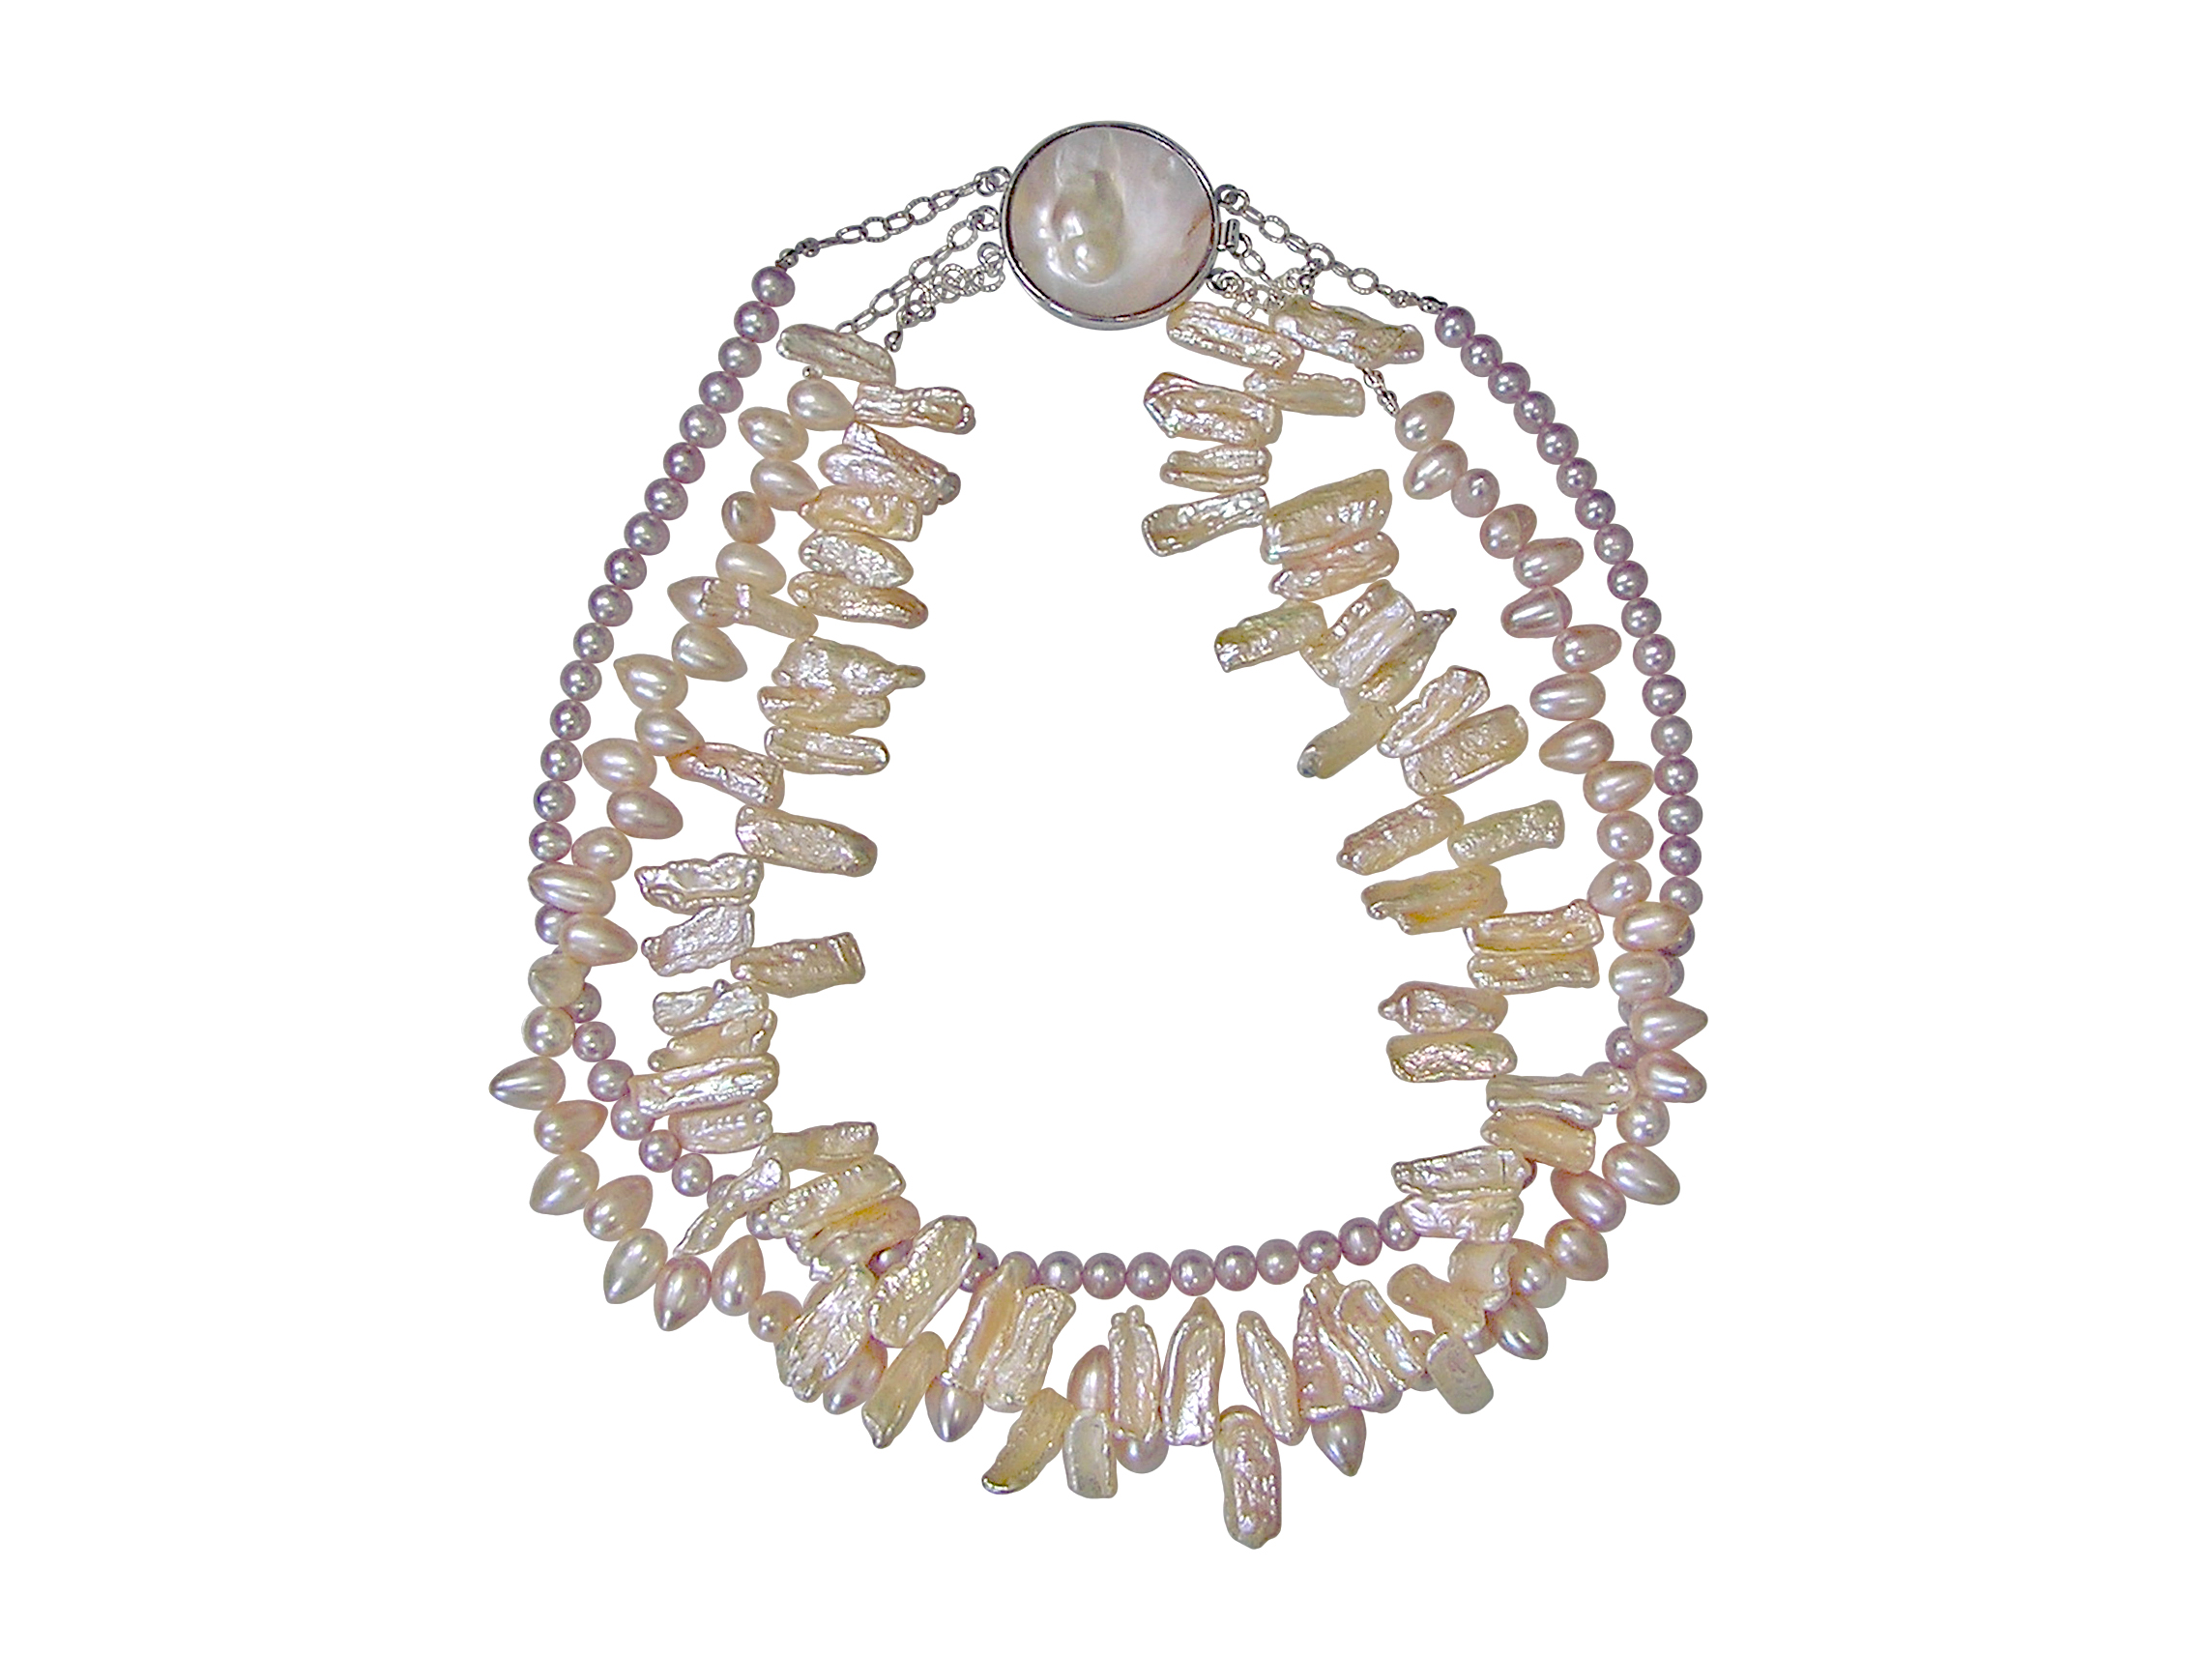 Triple Strand Pastel Freshwater Pearl Necklace with Mabé Clasp